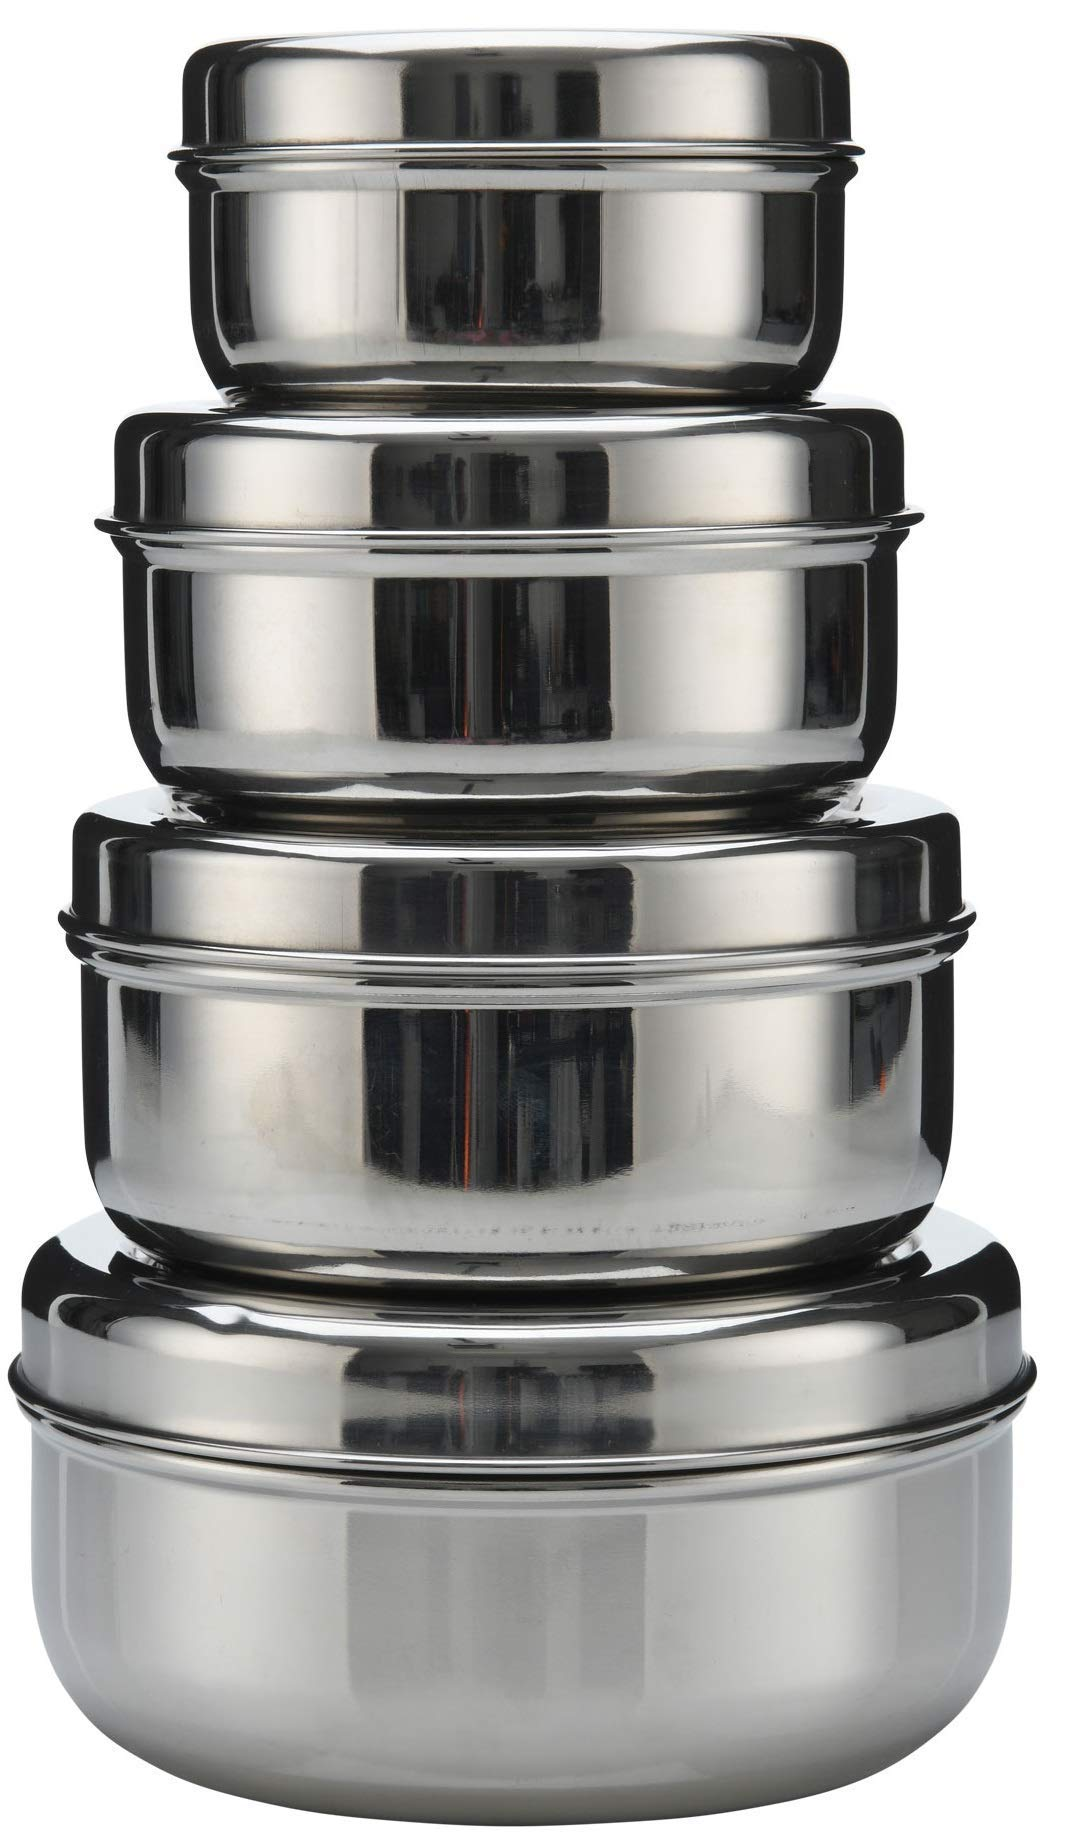 18/8 Stainless Steel pack of 4 nesting Lunch Box and food storage container set - Eco friendly, Dishwasher Safe, BPA free, Great for snacks, food storage or leftovers 10oz - 30oz